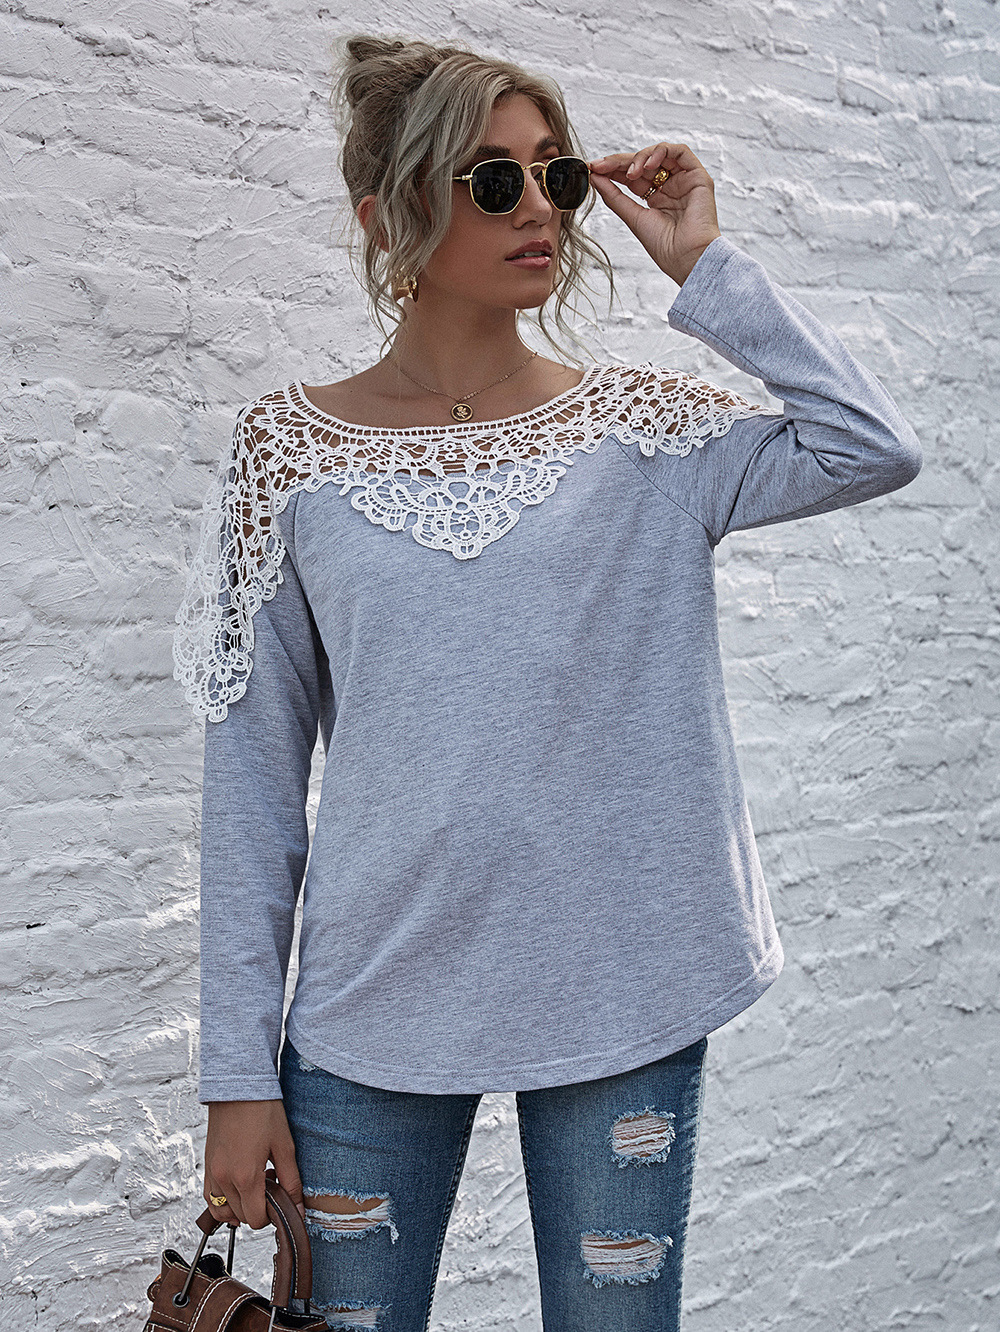 women's hot sale new round neck pullover sweater women autumn and winter long-sleeved shirt wholesale NSDF3931